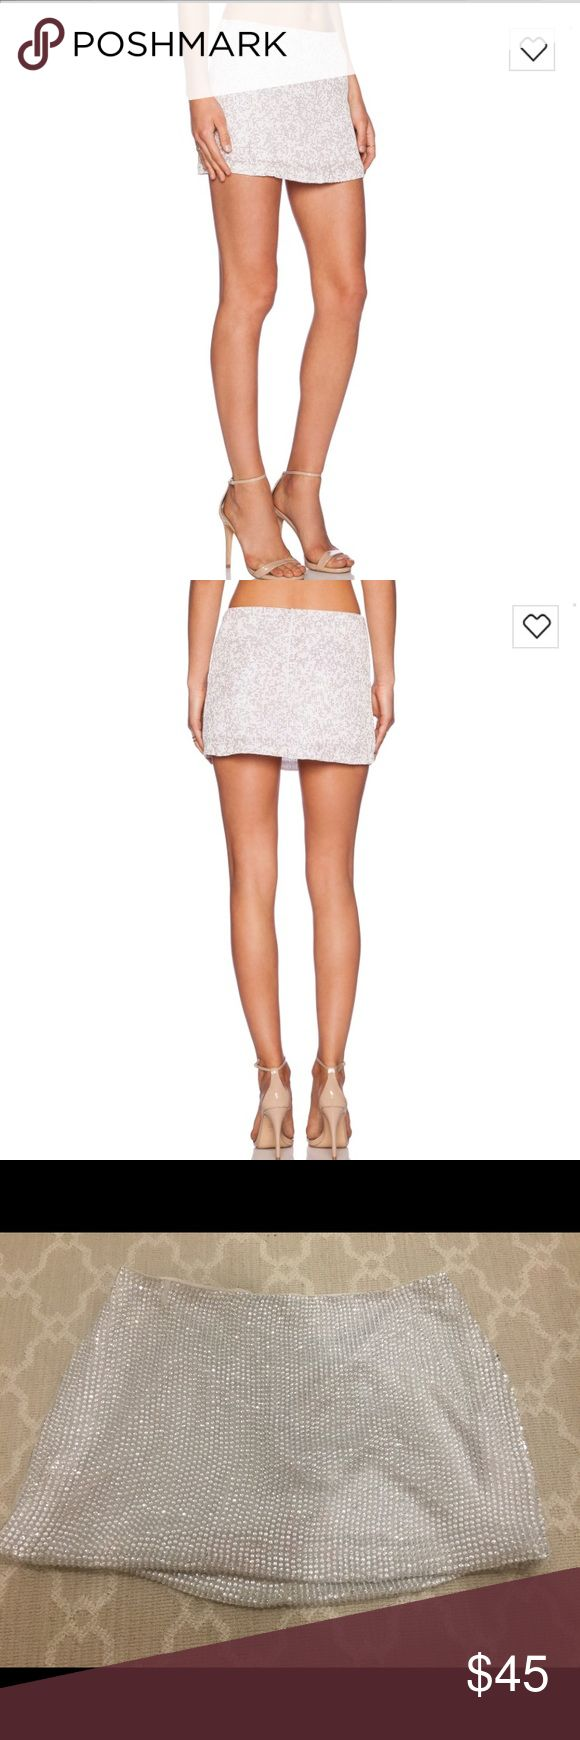 WORN ONCE! MLV Bonnie Sequin Skirt in Ivory - M Worn once for my Bachelorette! Bought for $239 on Revolve. MLV (Mayren Lee Viray) sequin mini skirt in Ivory - size medium. Great condition. So fun and flirty! See photos for item details. Size Medium - fits like a 4. MLV Skirts Mini